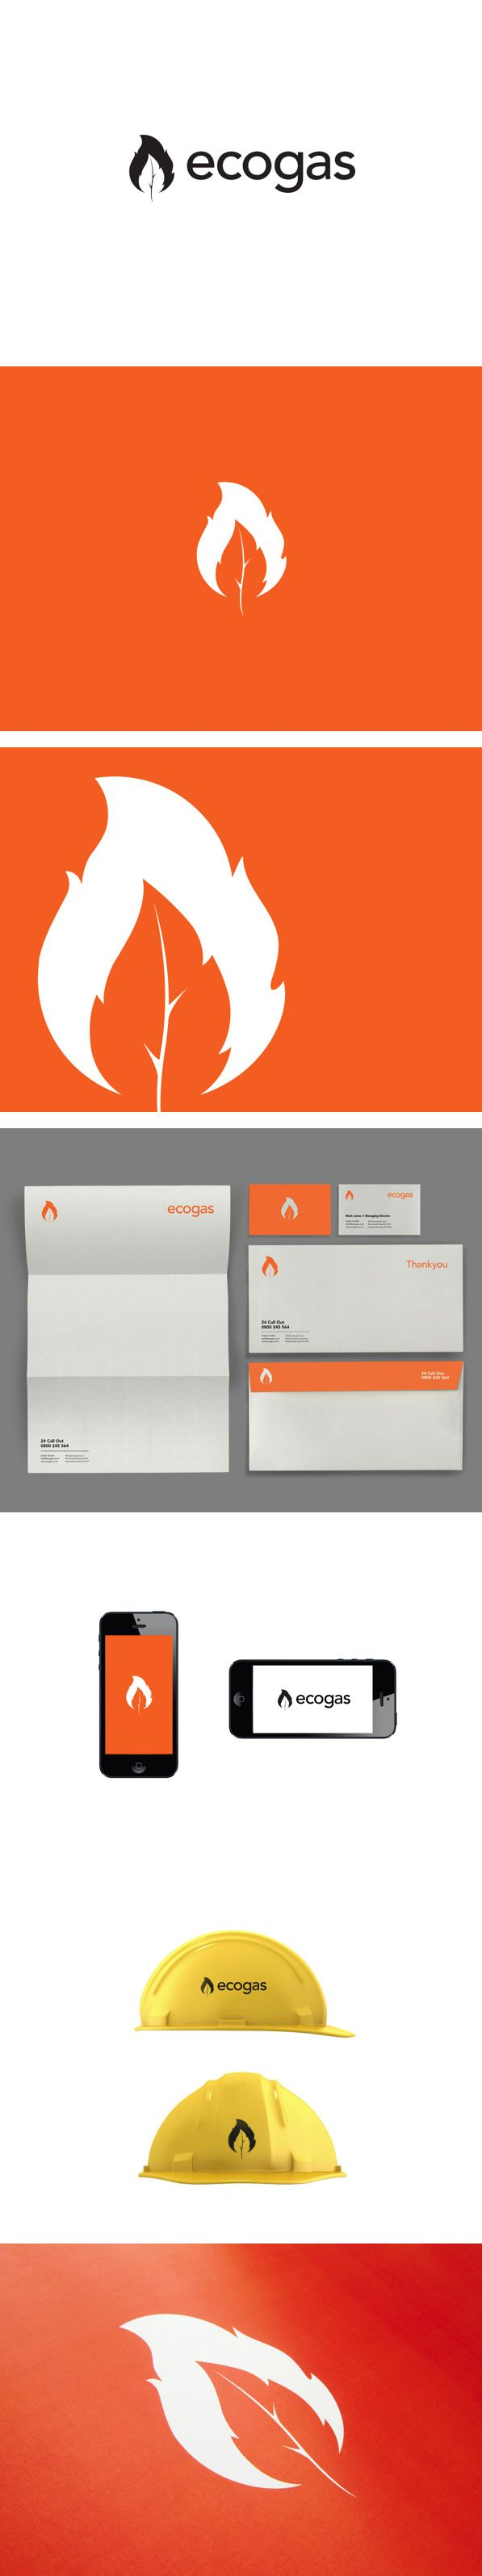 Ecogas Identity by Kyle Wilkinson